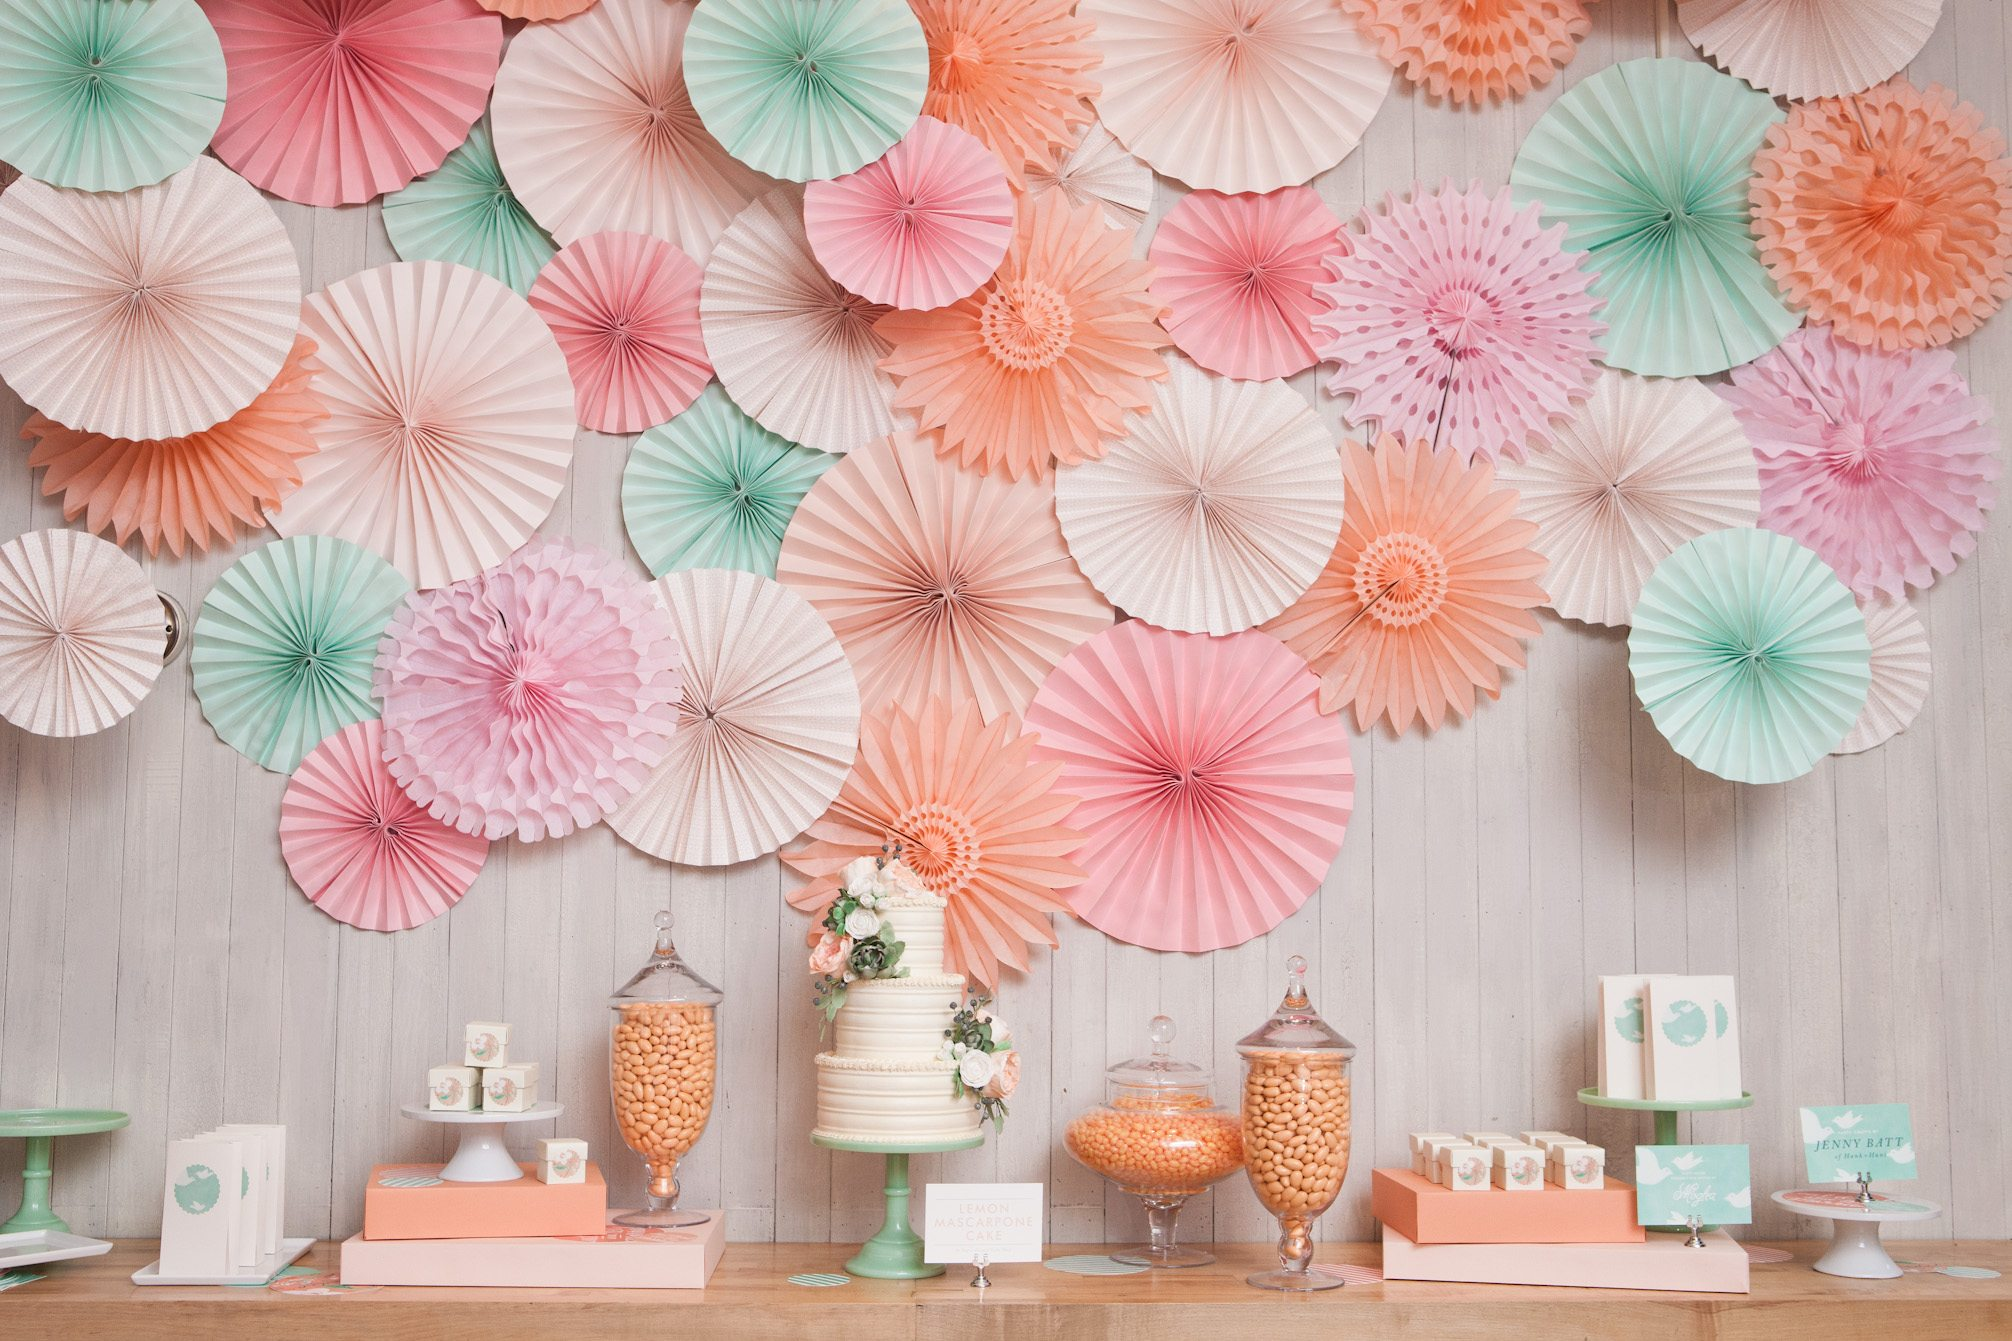 Brunch with Minted - The Sweetest Occasion